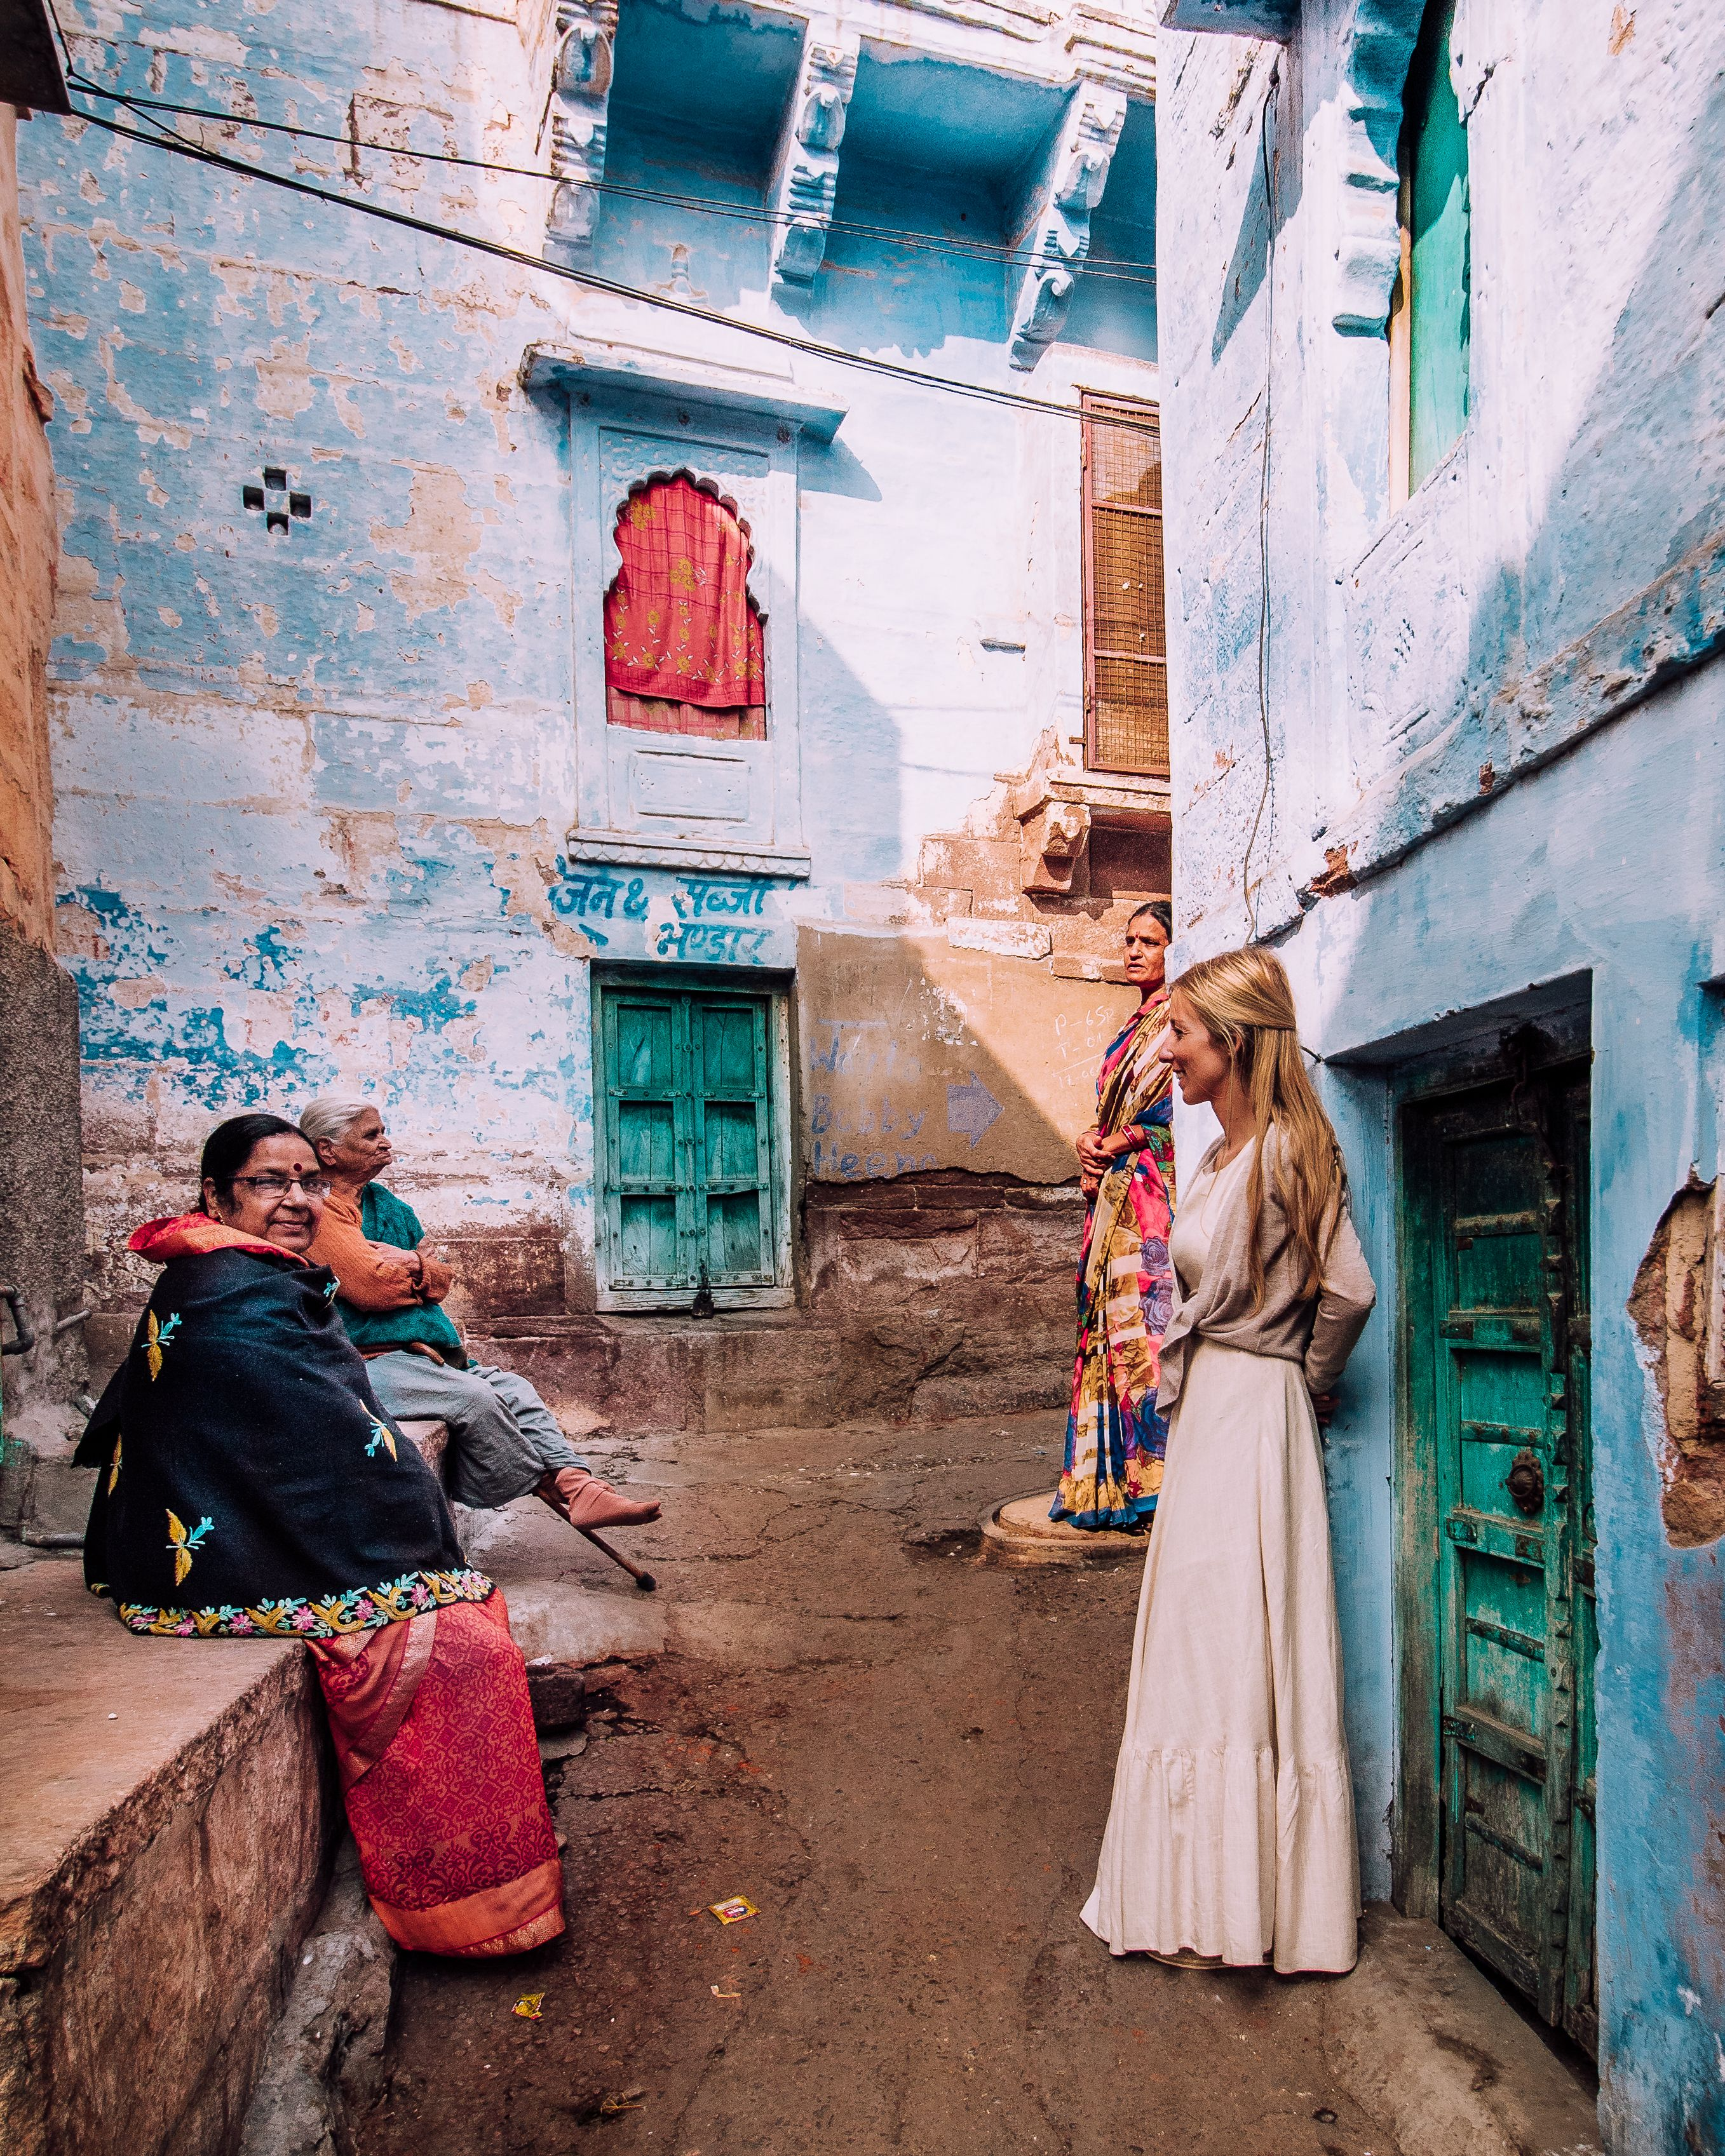 Discovering the blue alleyways of Jodhpur in India #rajasthan #India #travelinspo